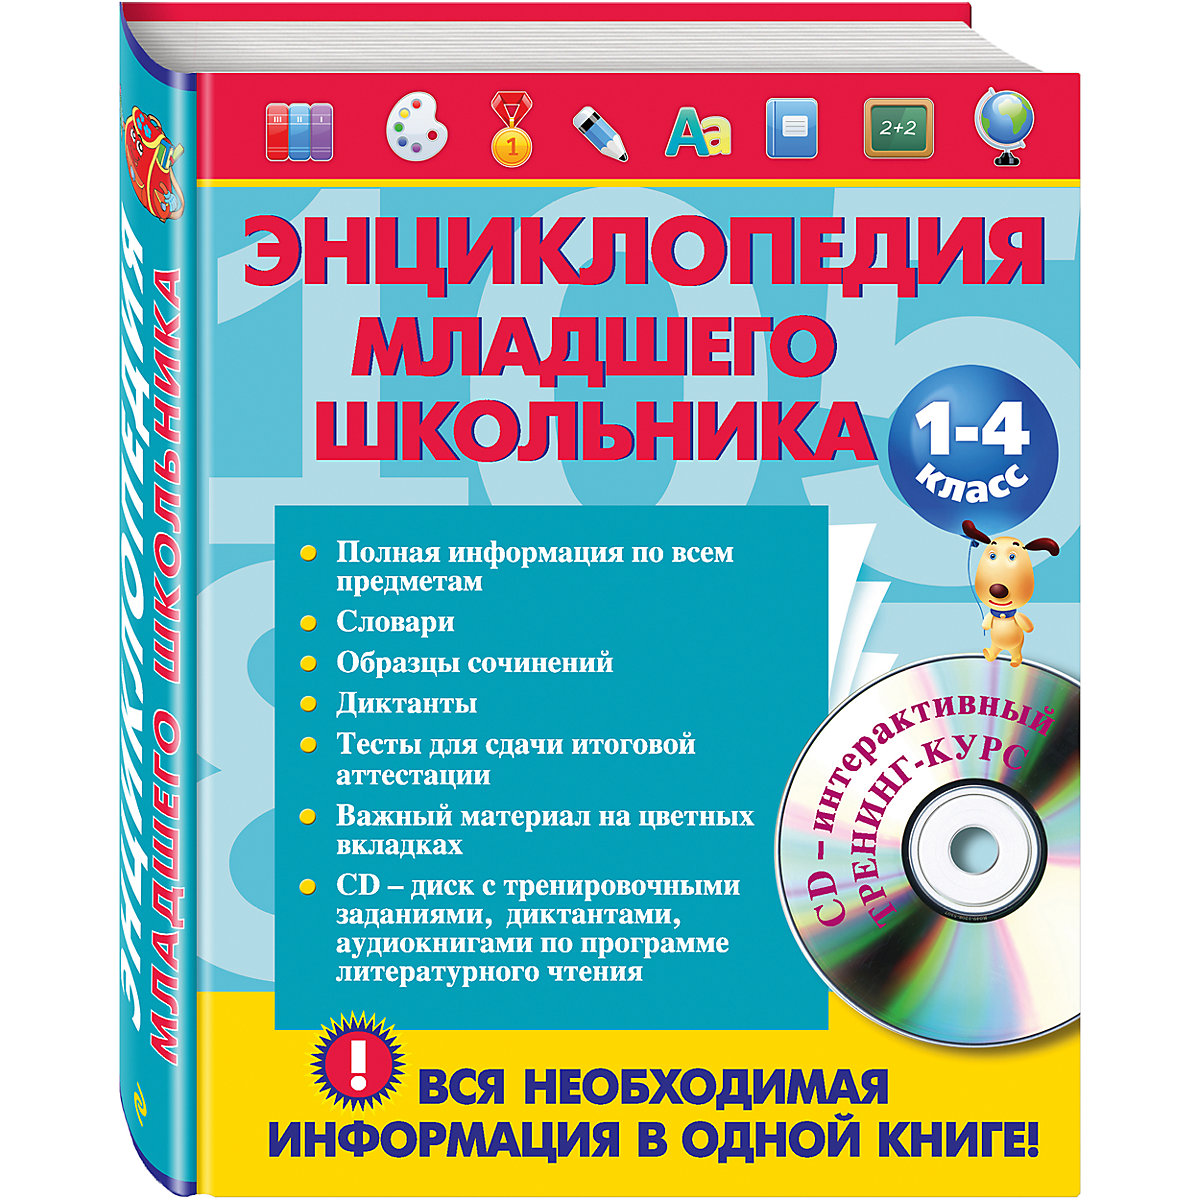 Books EKSMO 5535438 Children Education Encyclopedia Alphabet Dictionary Book For Baby